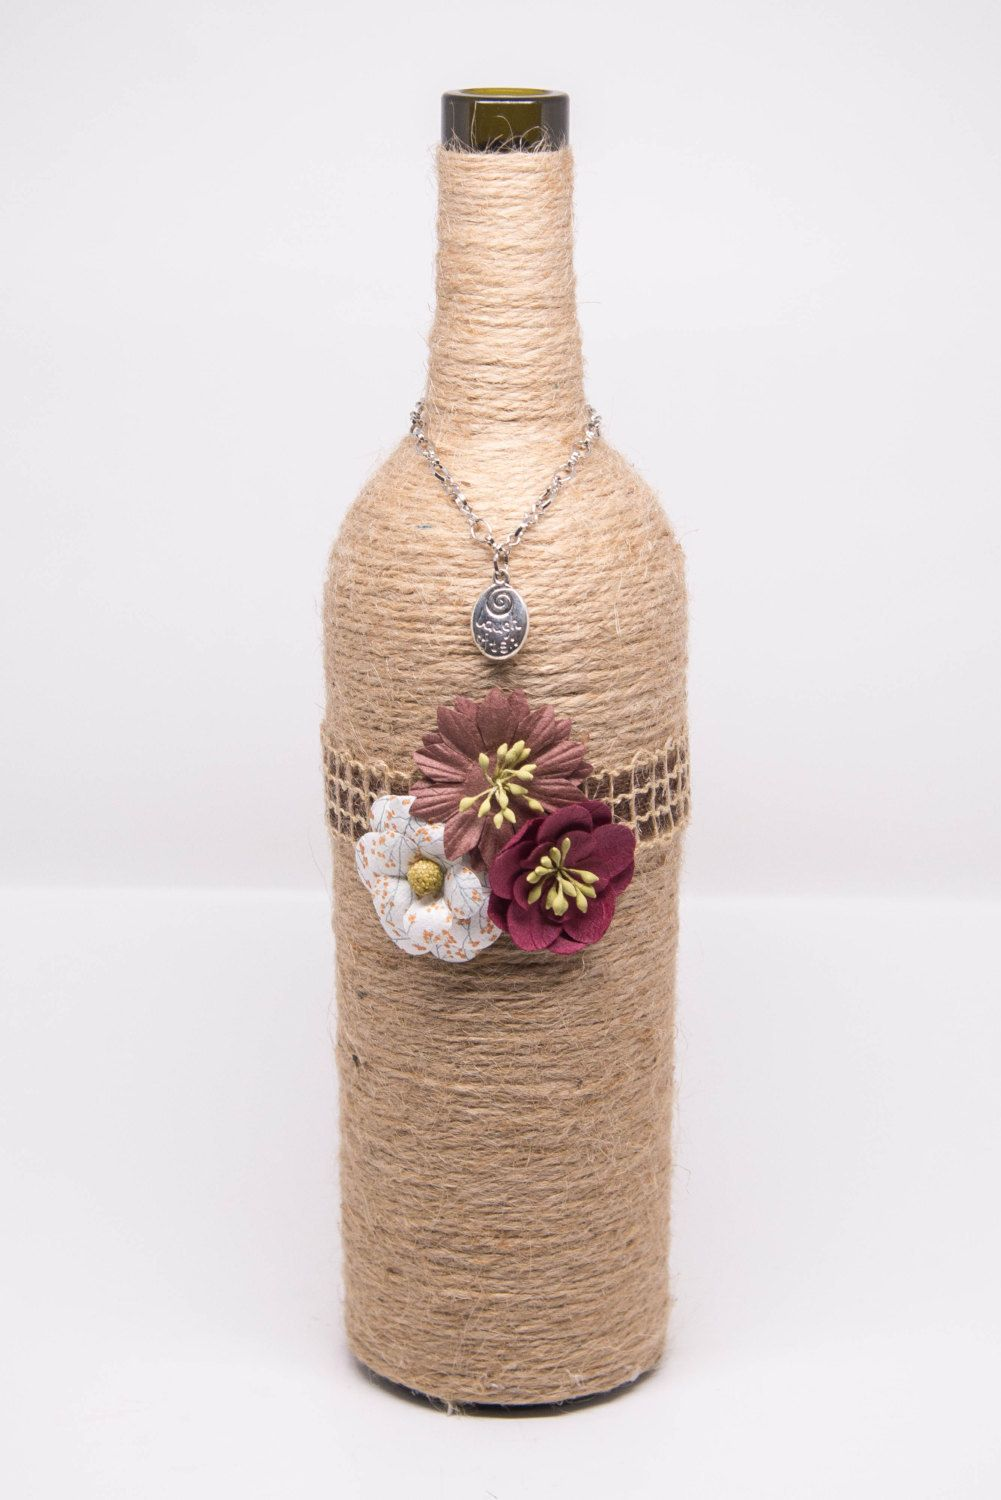 Love Twine wrapped wine bottle decor |Twine Covered Wine Bottles